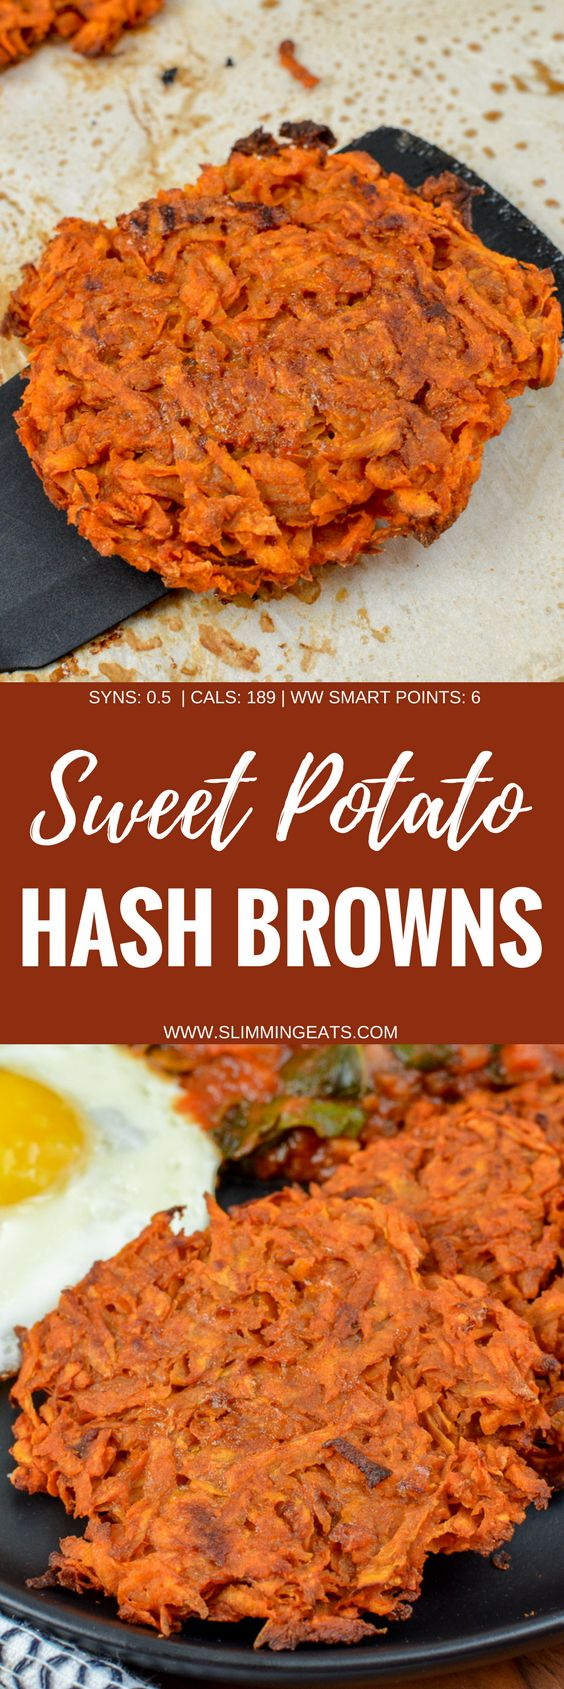 Serve up these delicious Sweet Potato Hash Browns for breakfast with your favourites eggs of choice. It's an amazing combination. Gluten Free, Dairy Free, Vegetarian, Slimming World and Weight Watchers friendly   www.slimmingeats.com